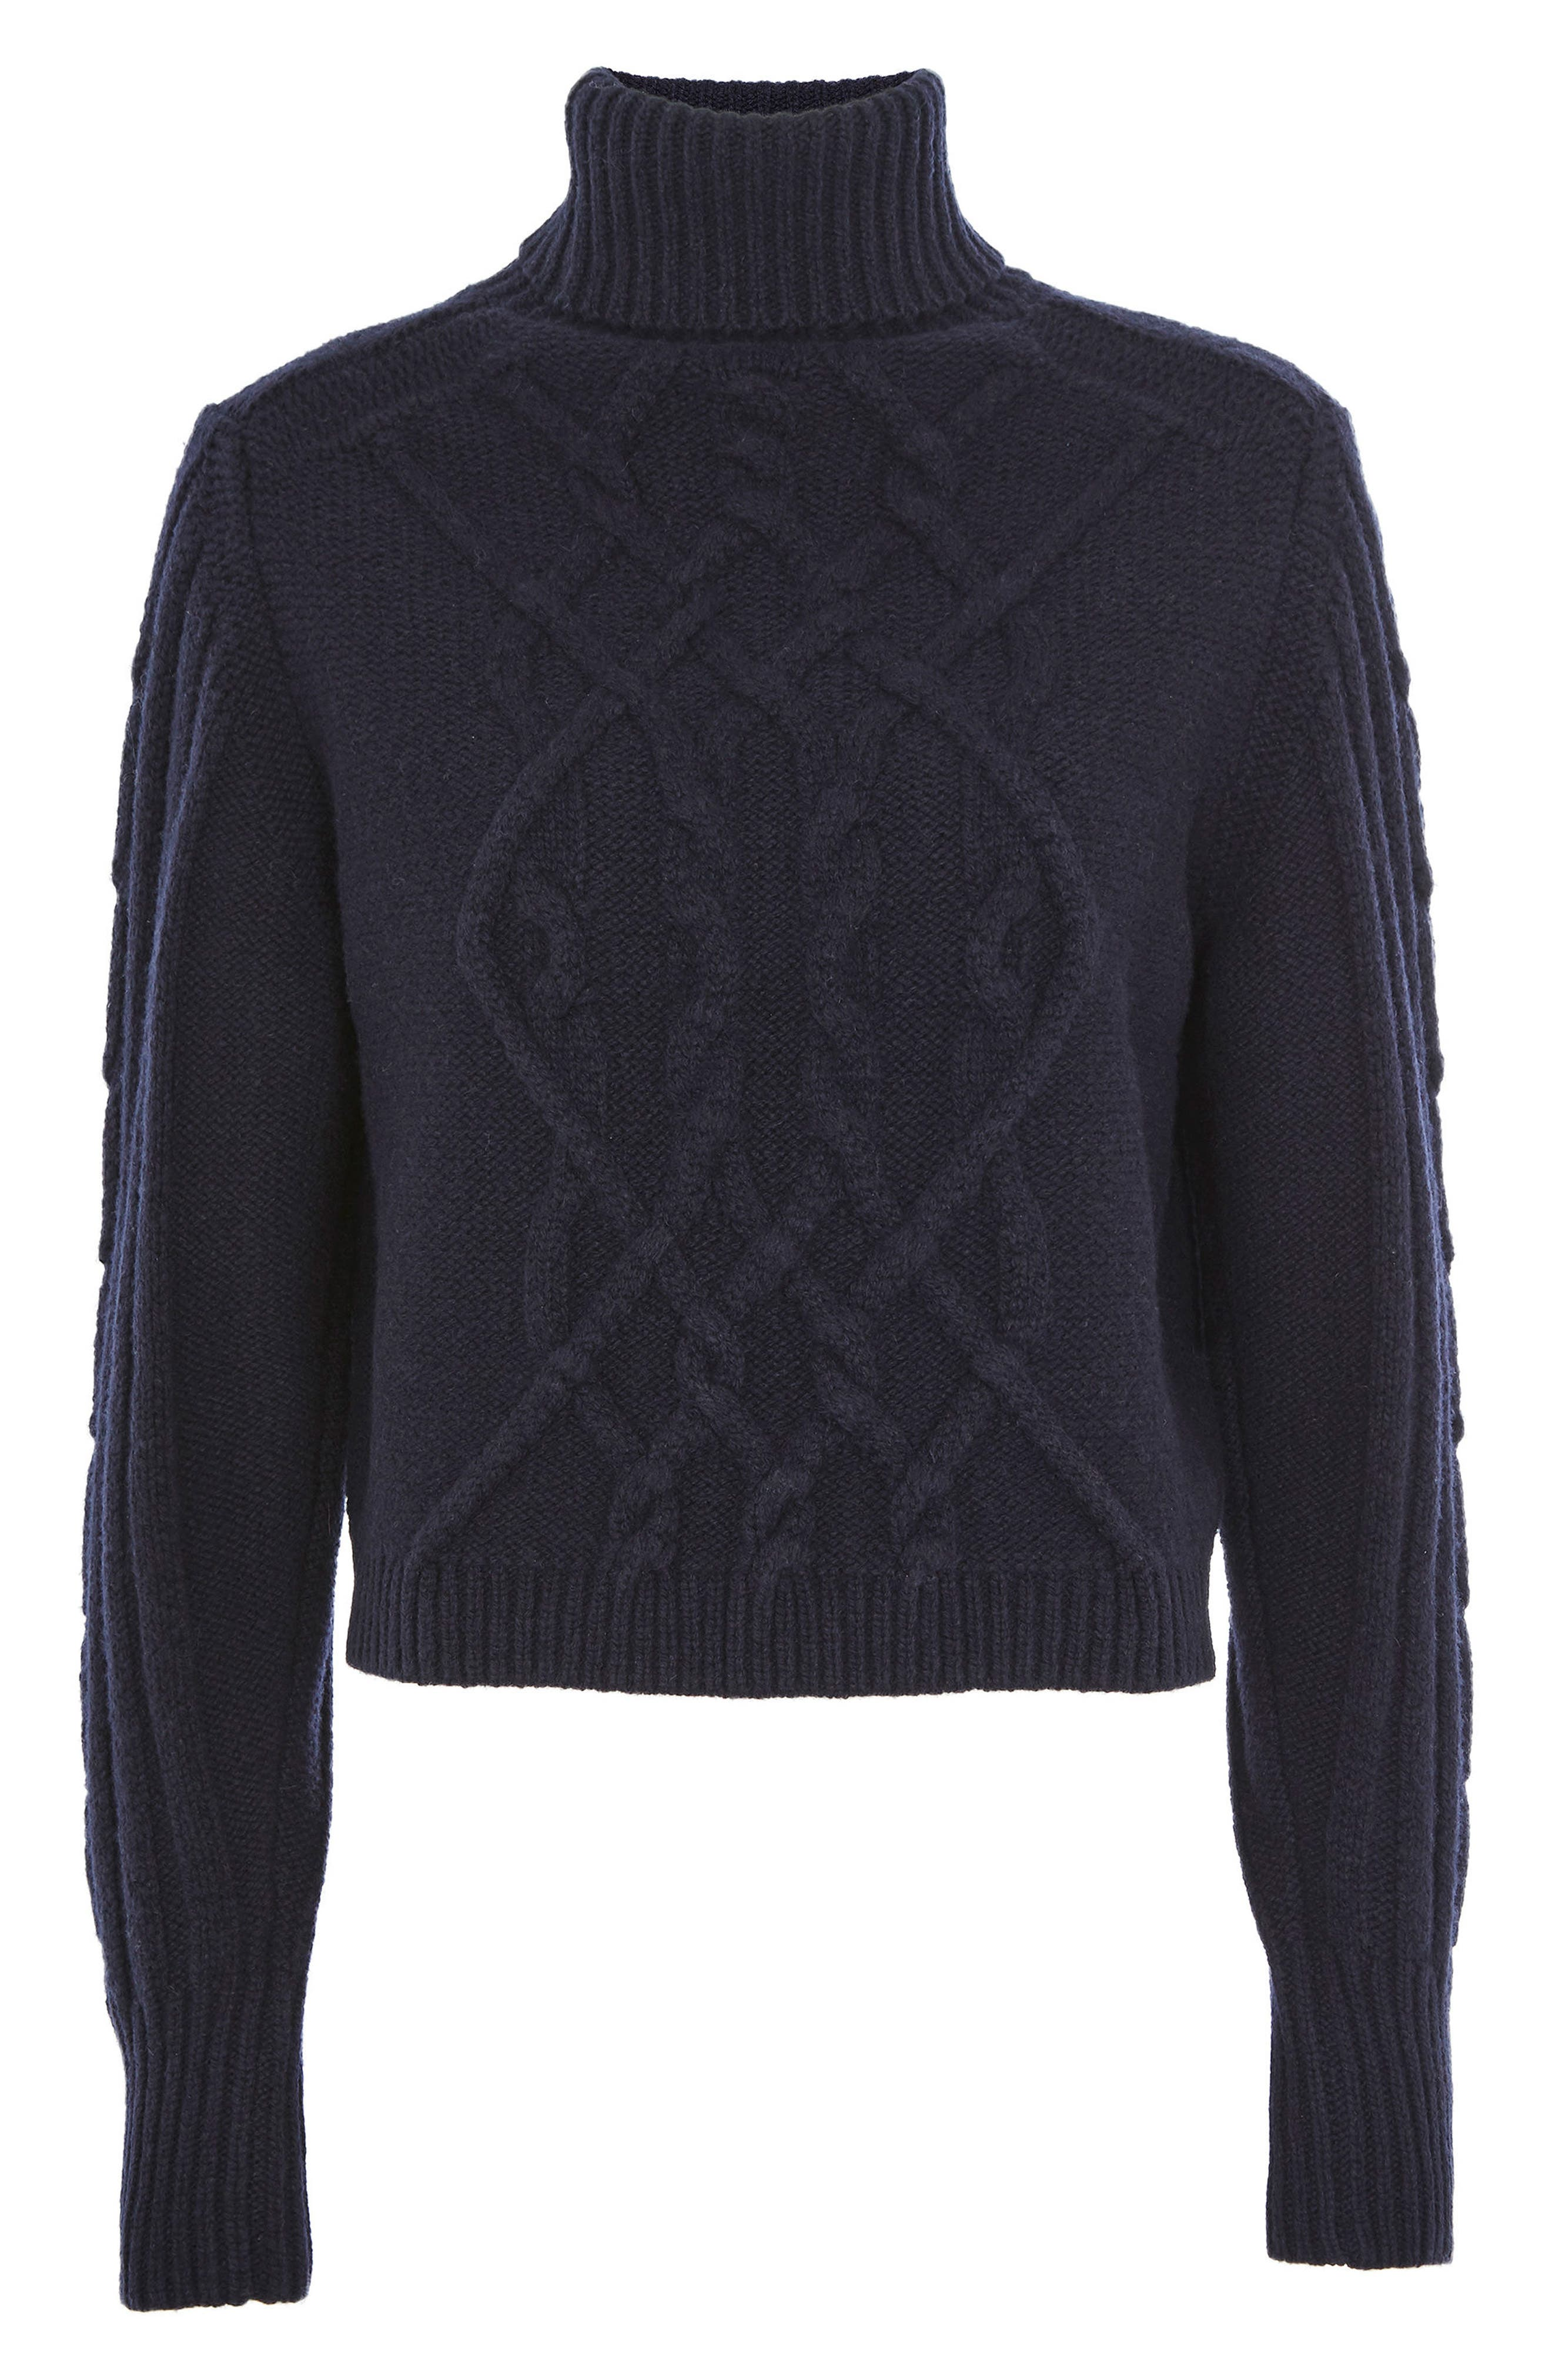 Topshop Cable Knit Turtleneck Sweater